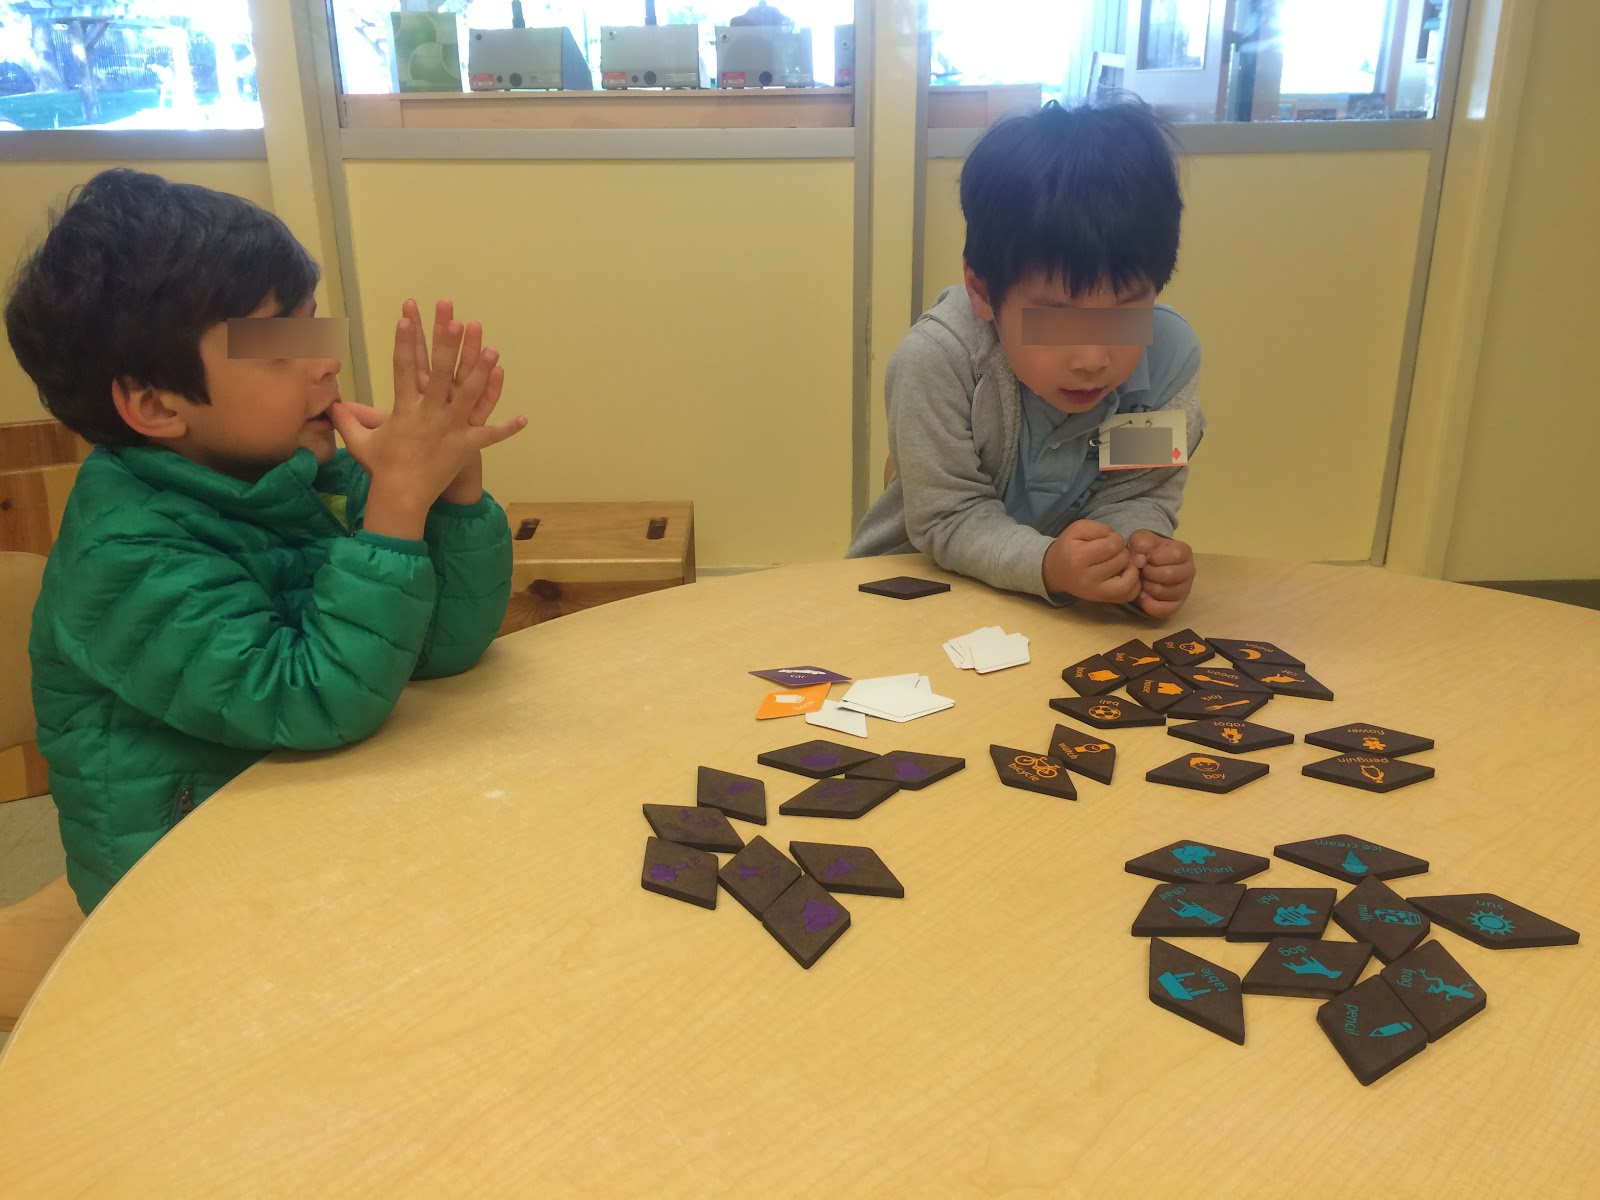 Figure14. Children at Bing Playing with Rhombus Rumbles